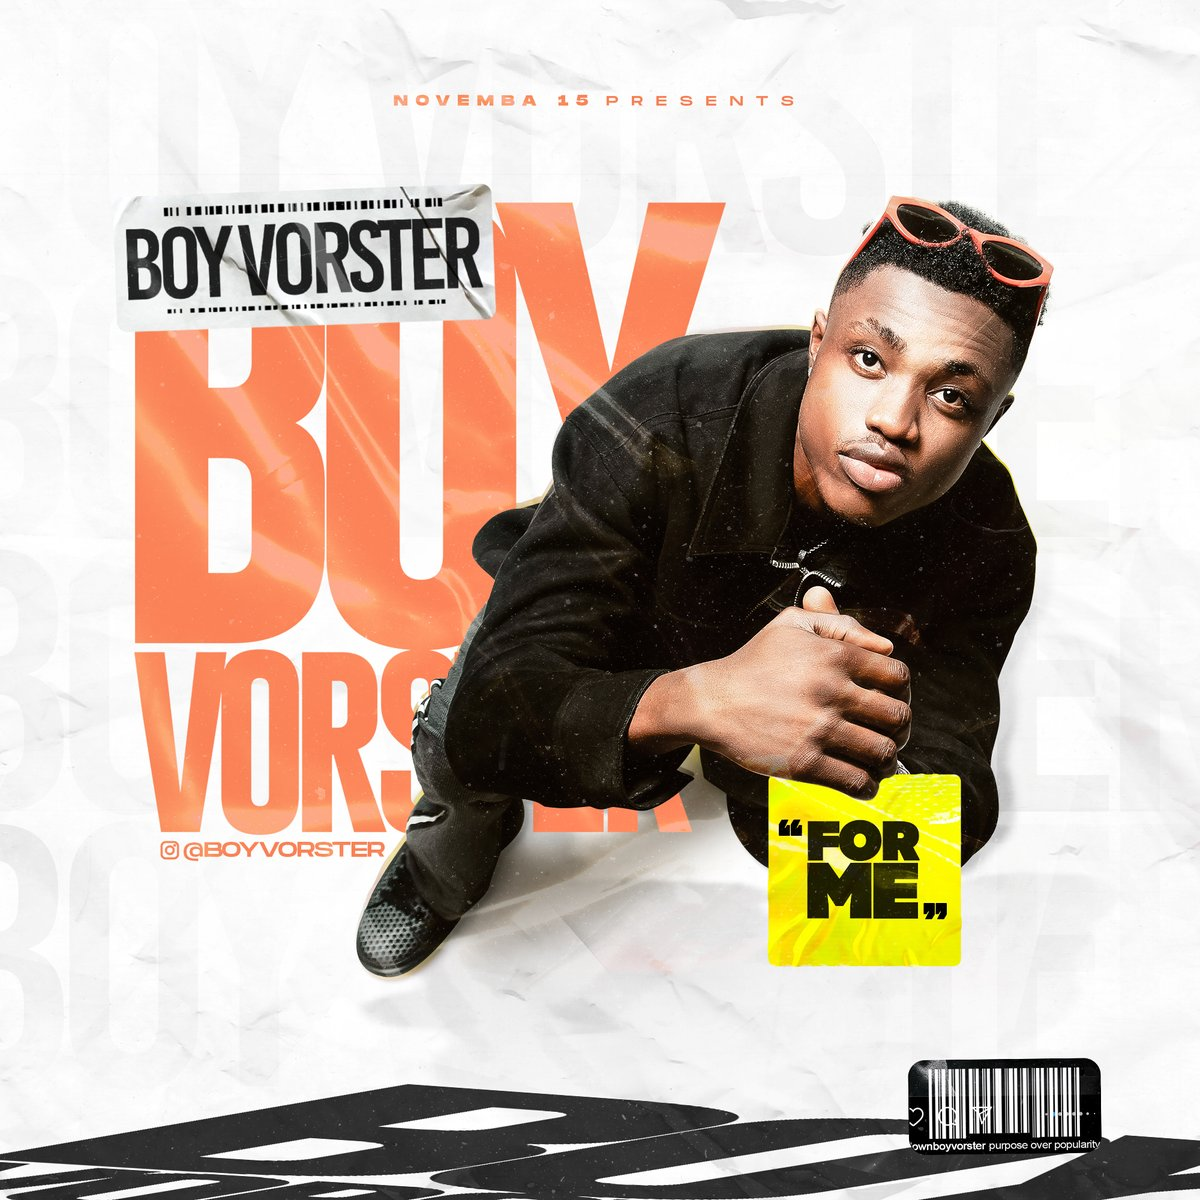 #Np For me @BoyVoster  @FOlistiq  #GoodMorningNigeriaShow with @UsoroEdima #Edima   #MondayMotivation #BeSafe  #EspressoDay  #CashewDay   Listen live: https://t.co/APoEkCjqwo https://t.co/Z57YBKyoD5